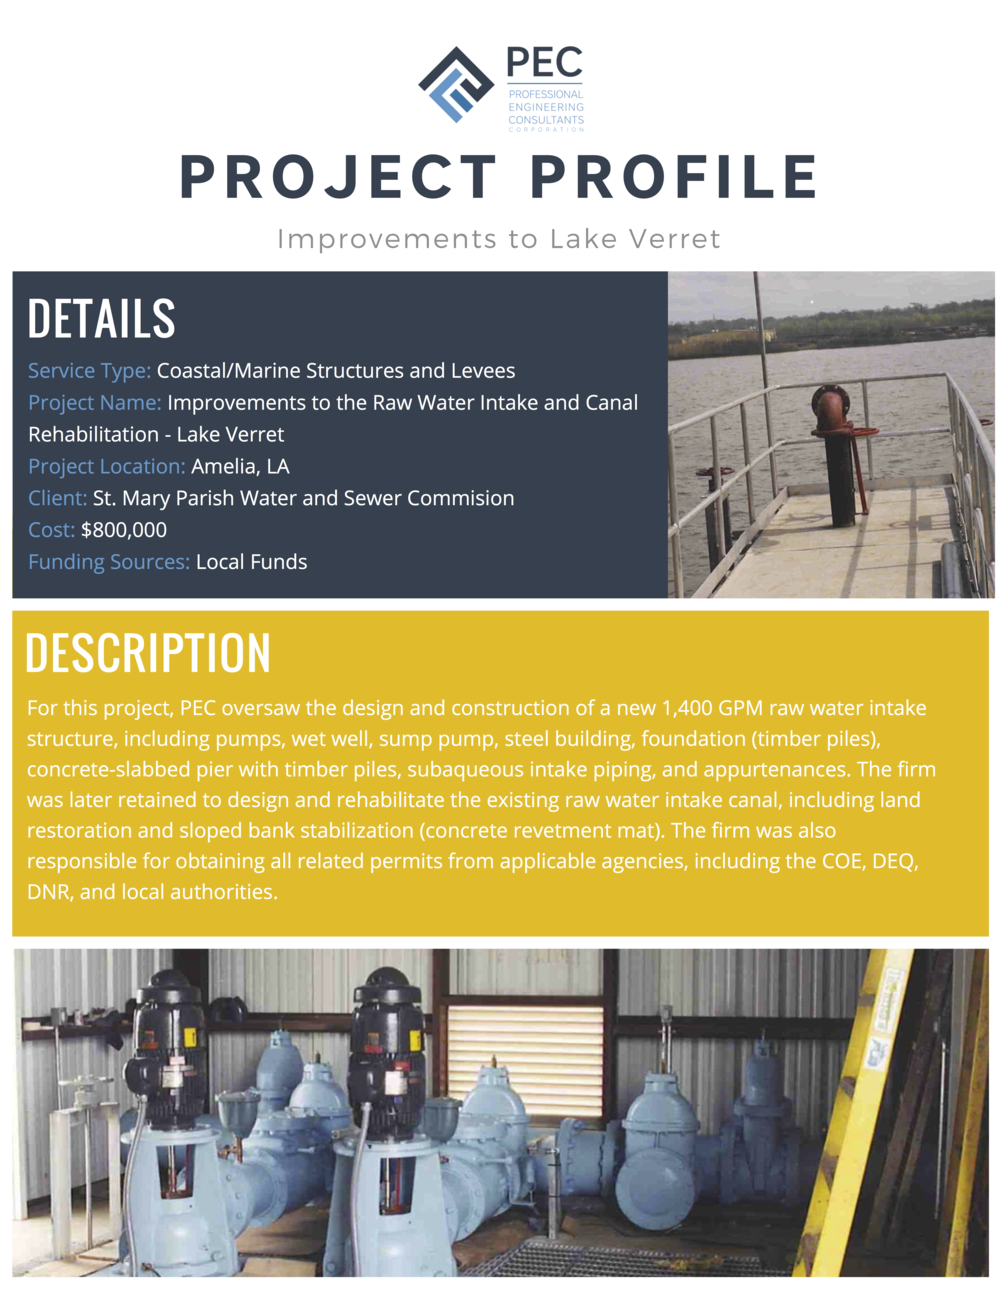 Project Profile_LakeVerret.jpg